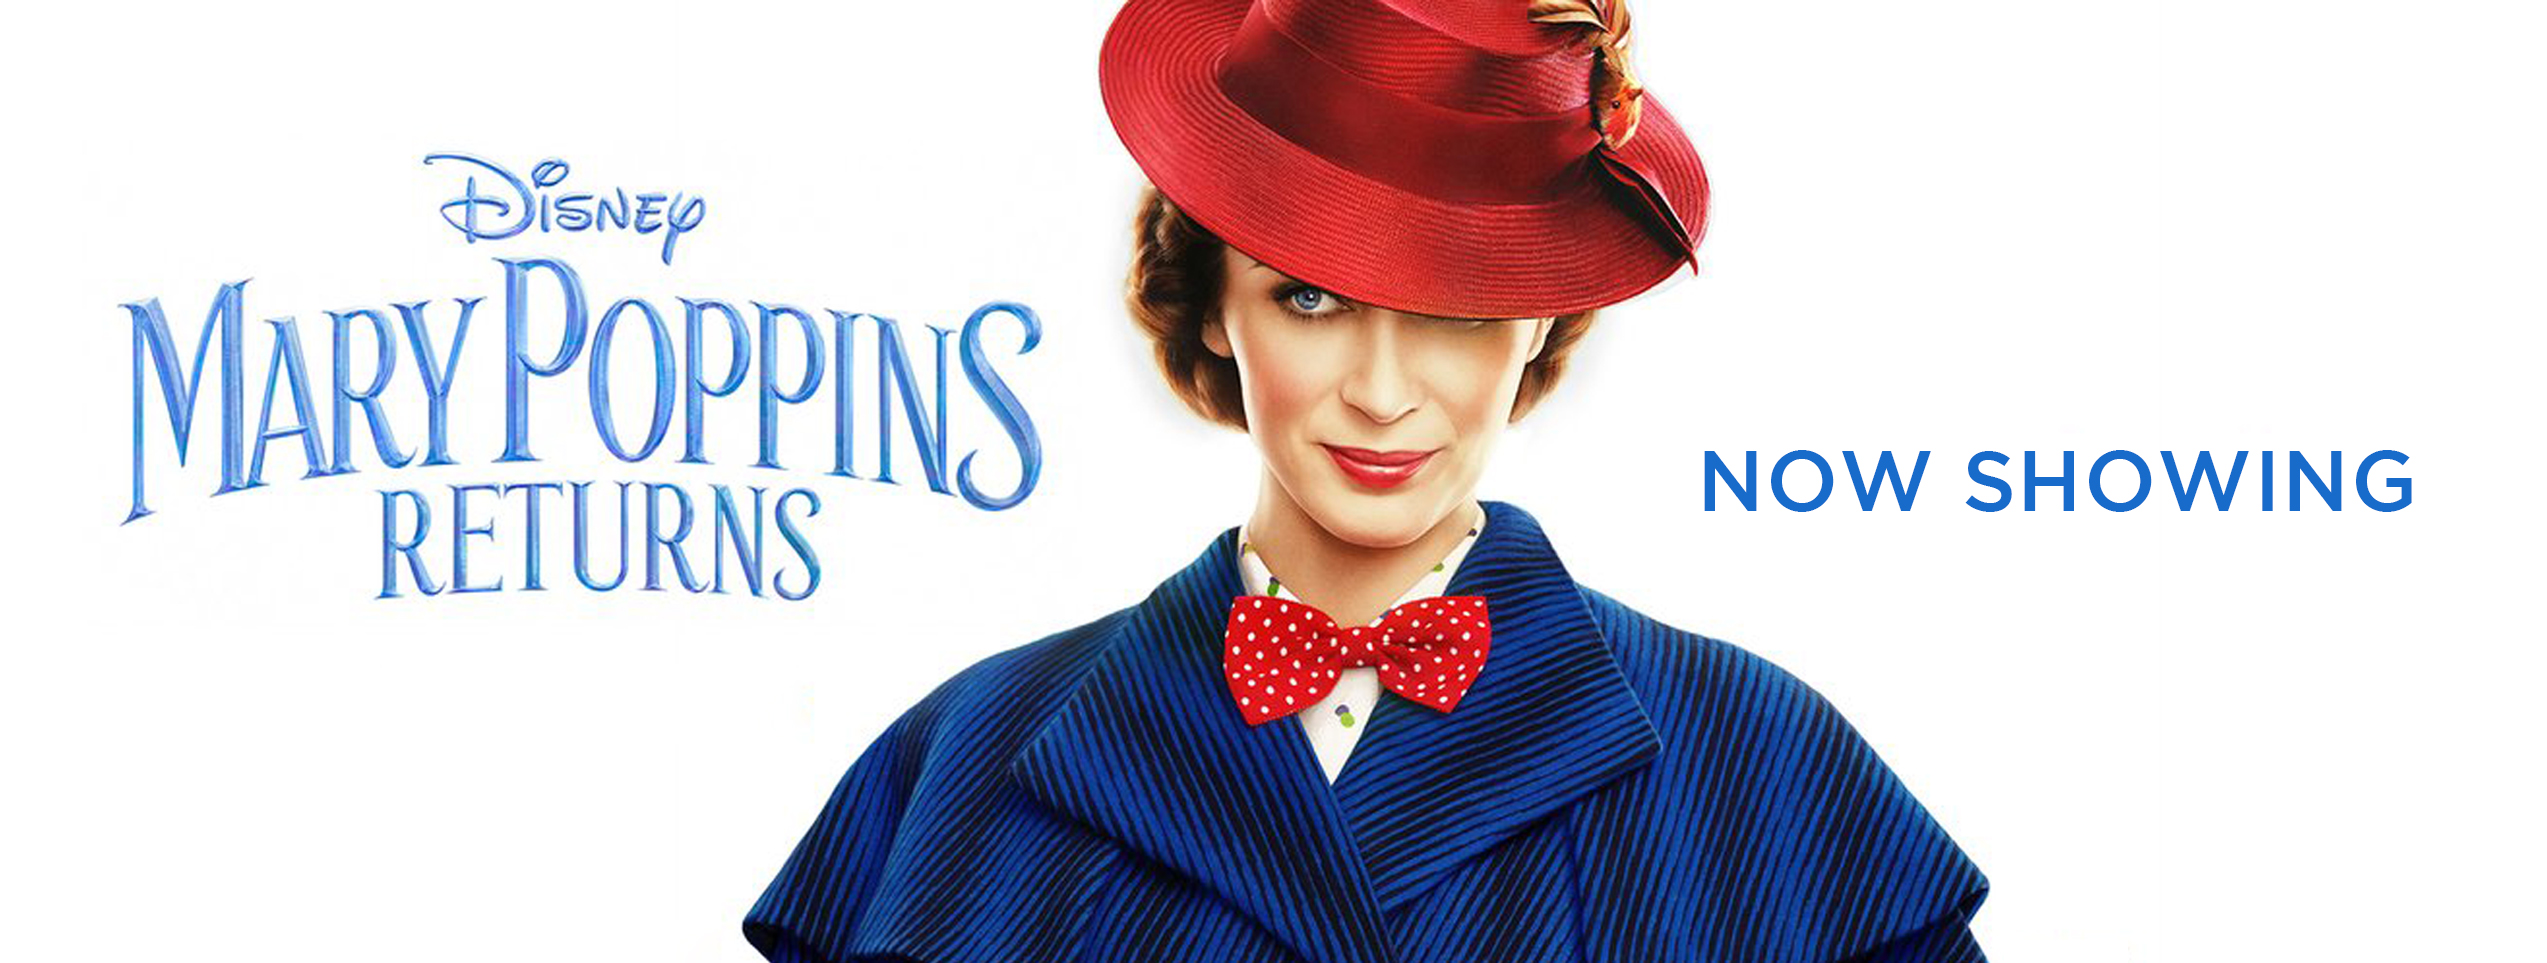 Mary Poppins Returns (2D) (PG) (Eng)